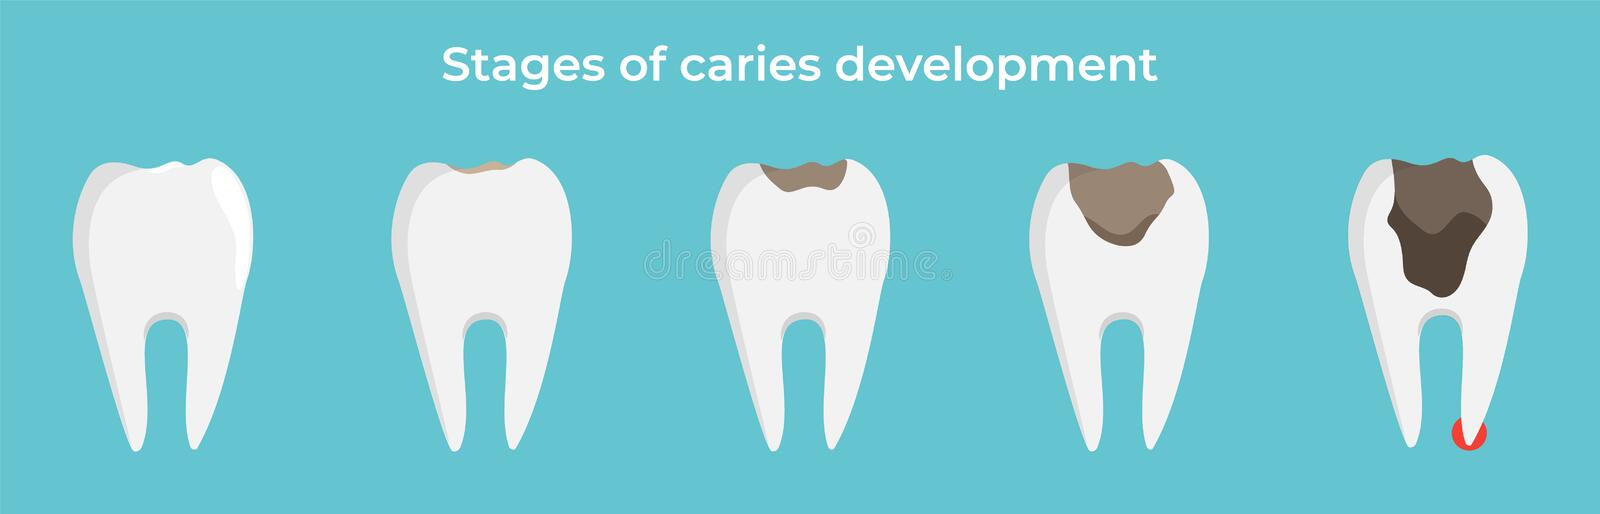 Stages of caries development, tooth dekay, dental concept, vector illustration on blue background. stock illustration